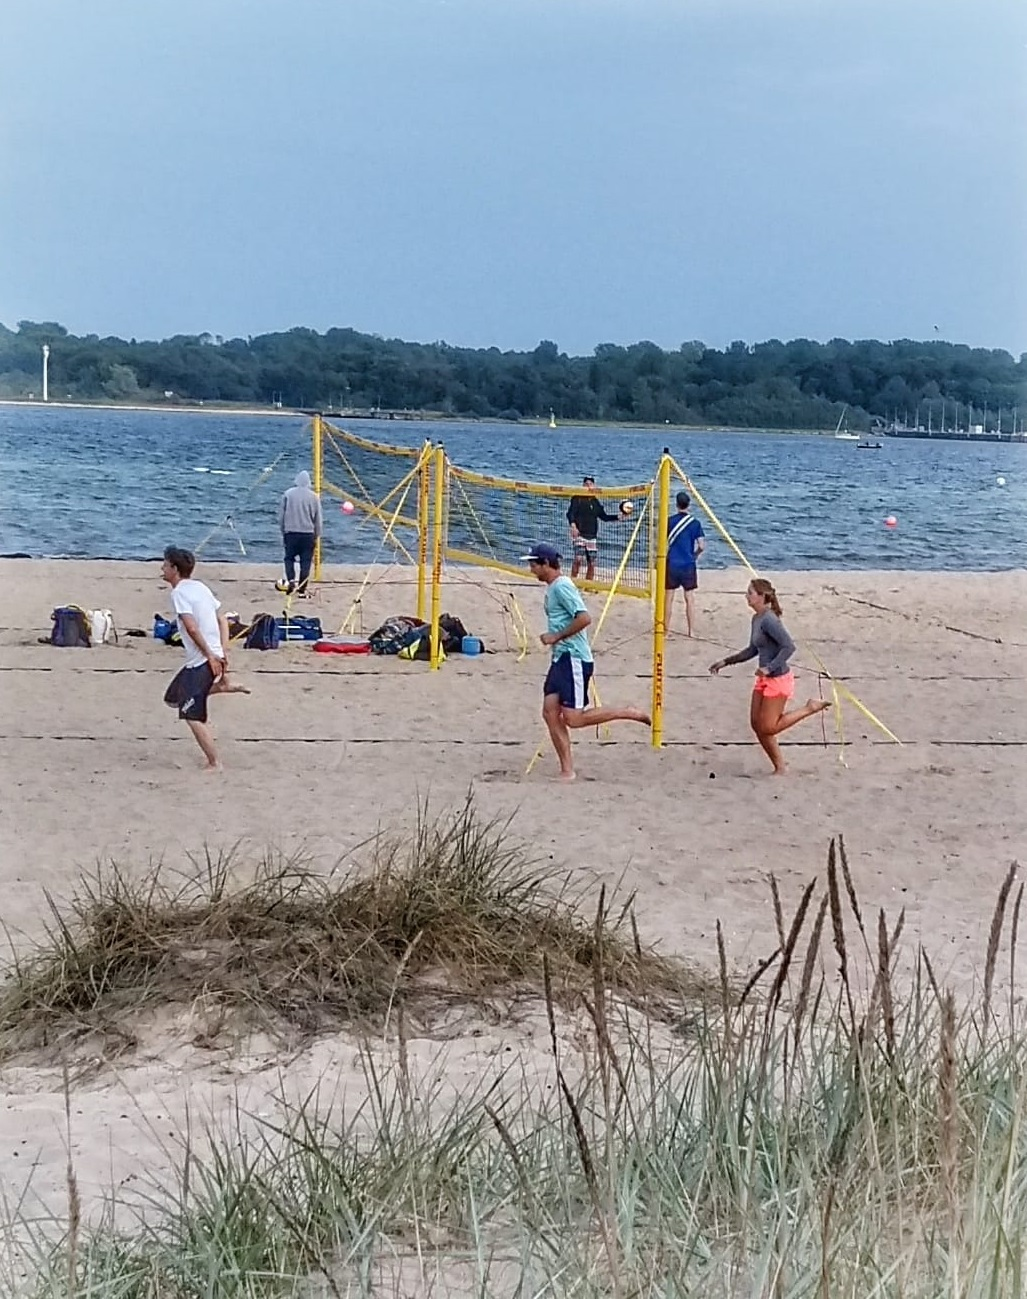 https://www.beachliga-kiel.de/wp-content/uploads/2018/11/camp_2018.jpg